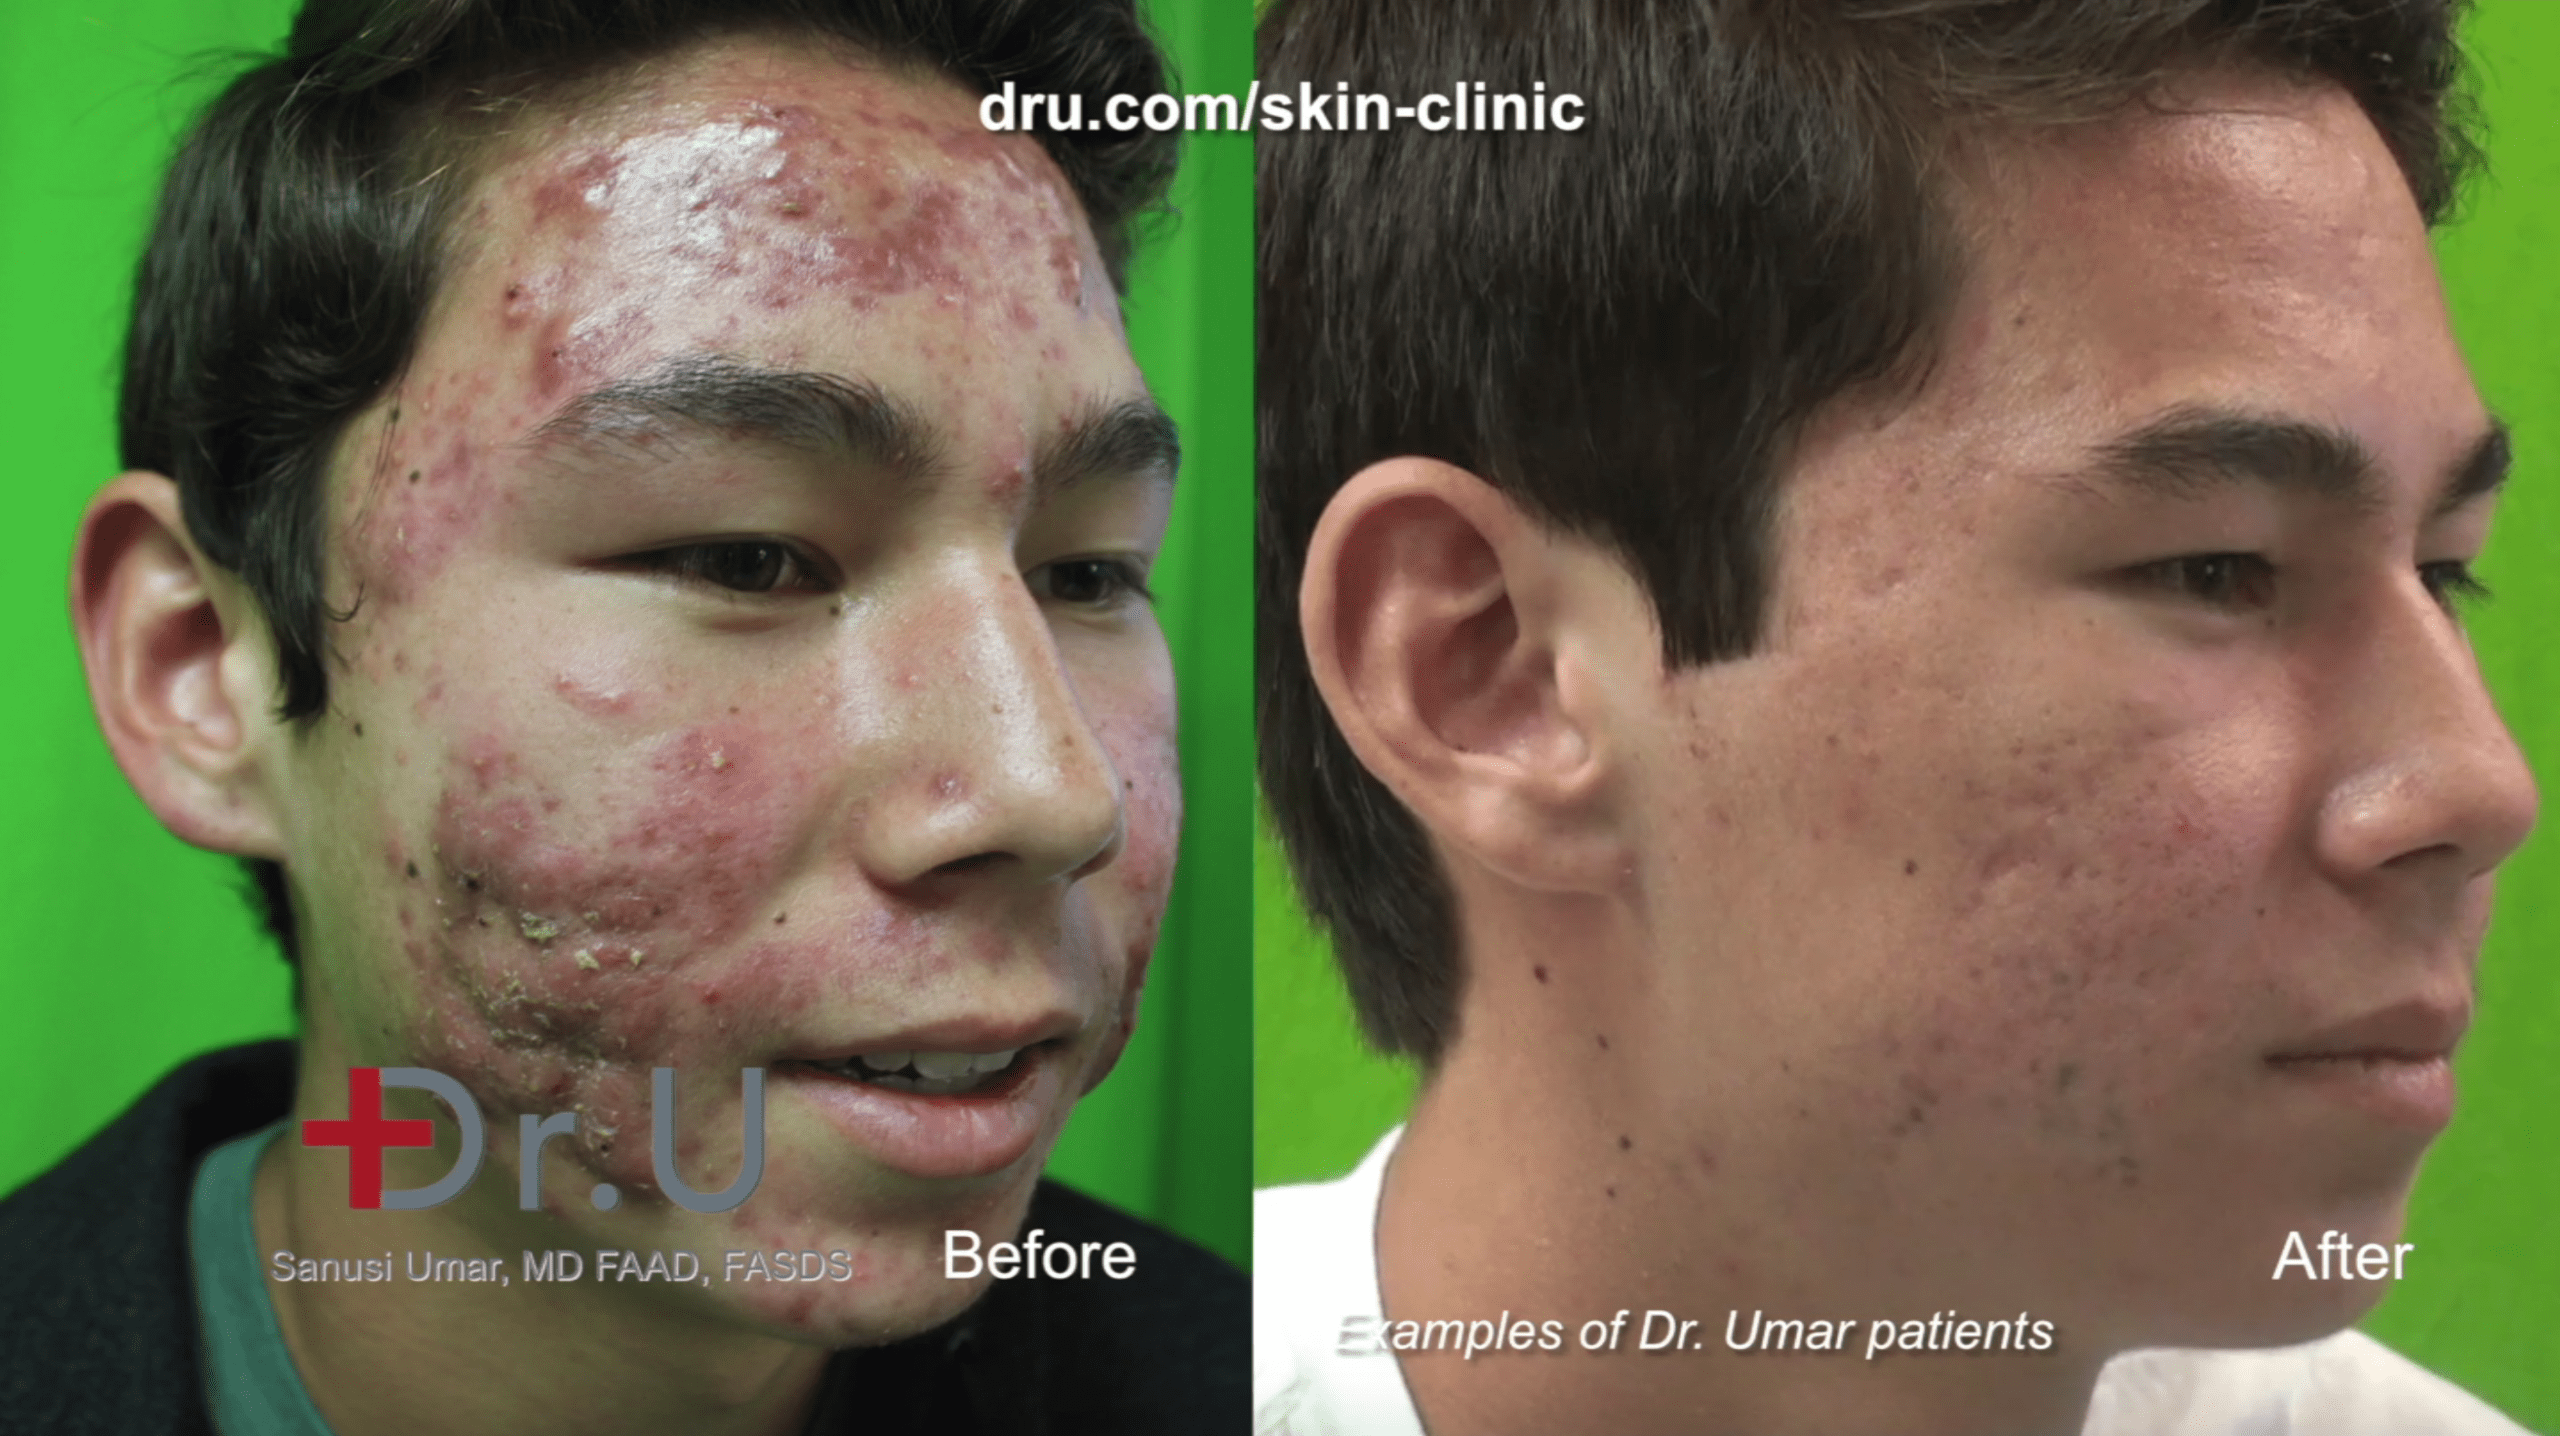 The result of PDT laser treatment for acne at Dr. U Skin Clinic.*